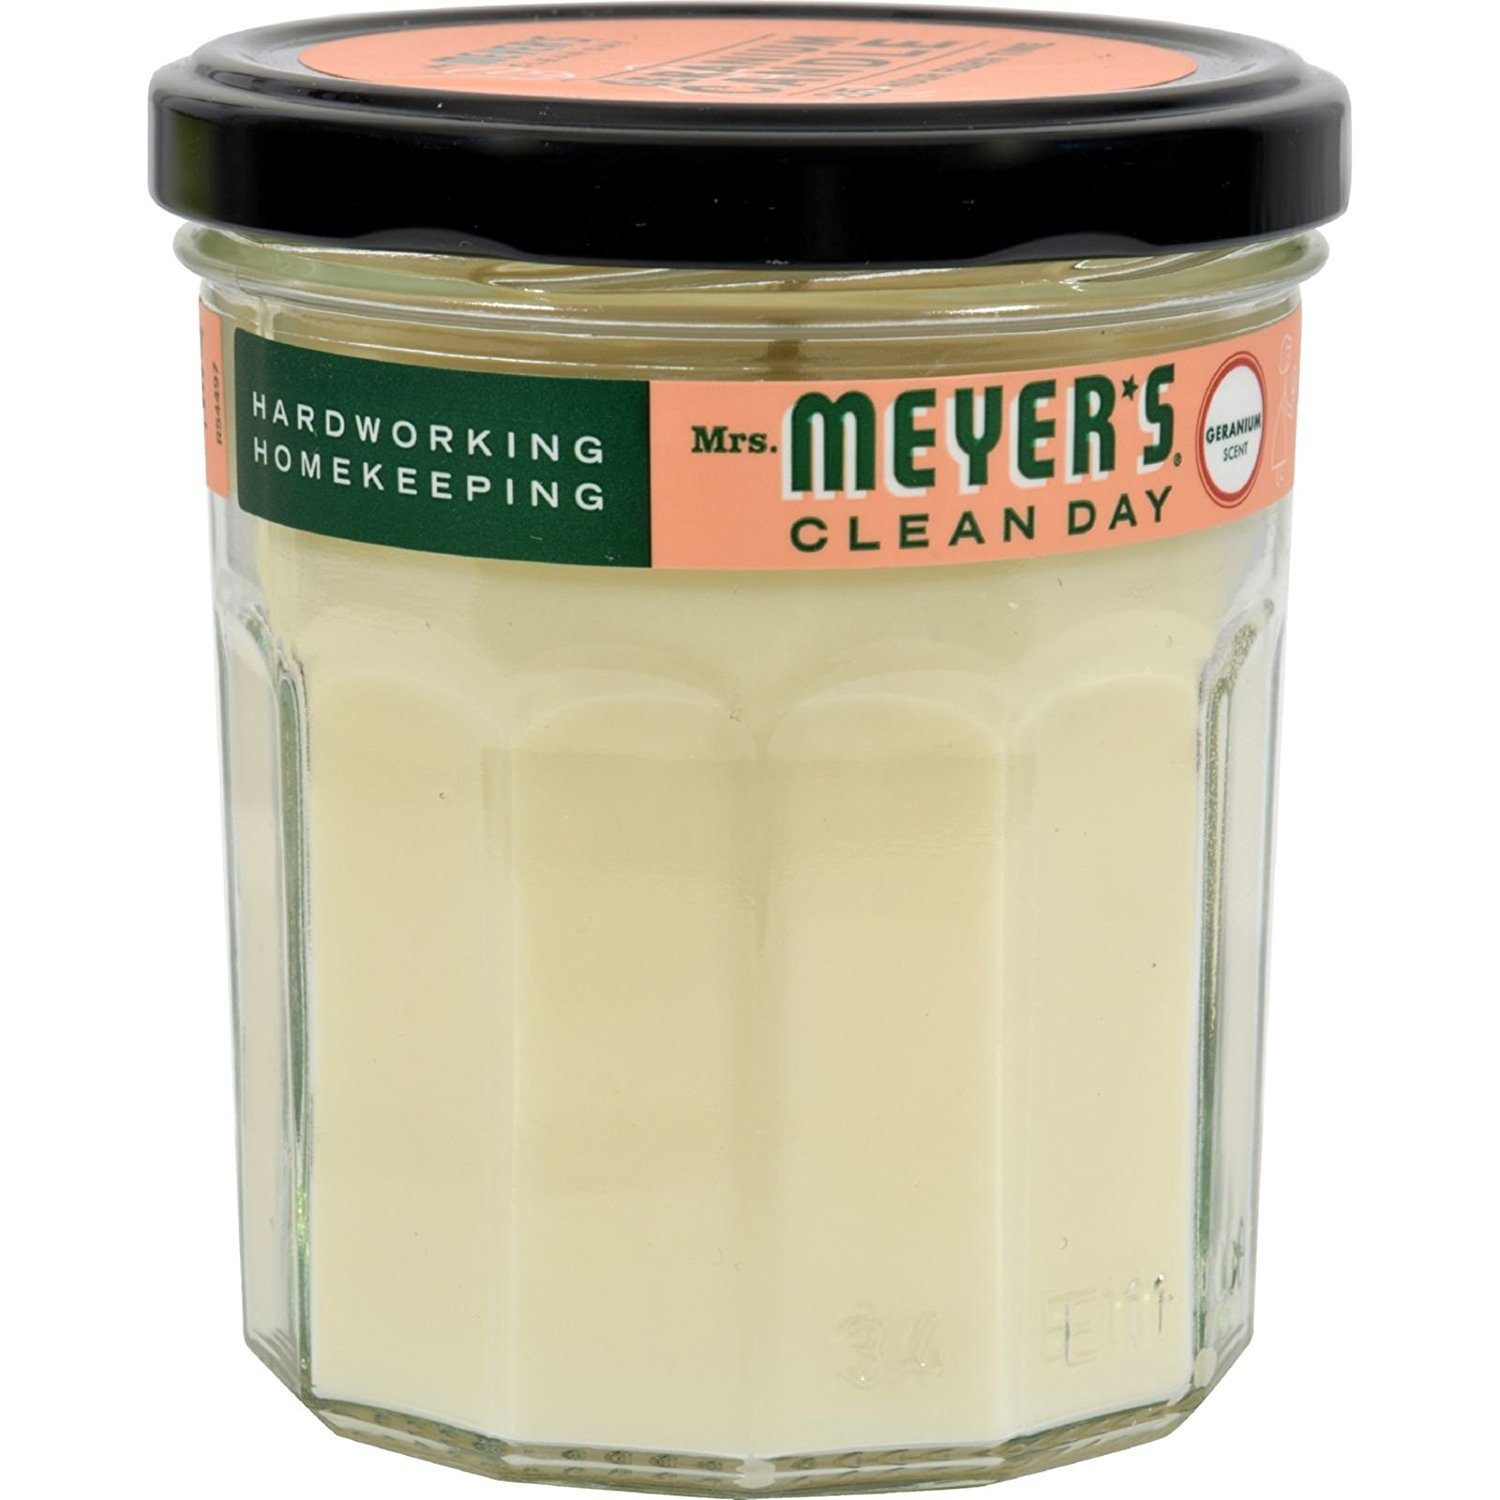 Mrs. Meyer s Soy Candle - Geranium - Case of 6 - 7.2 oz Candles by Mrs. Meyer's Clean Day (Image #1)